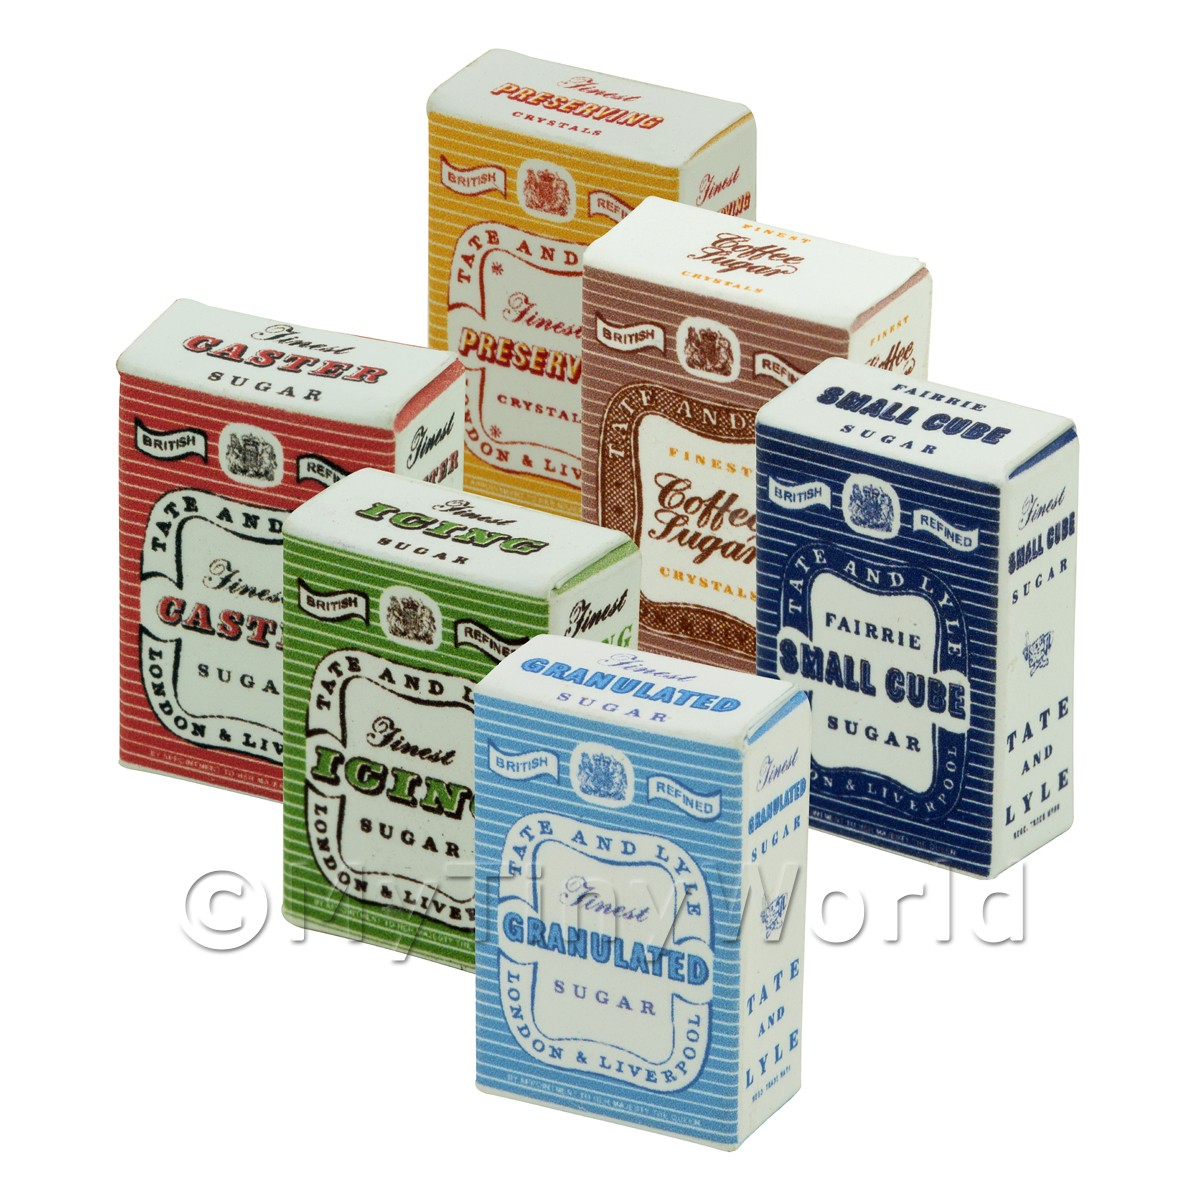 6 Dolls House Miniature Tate and Lyle Sugar Boxes